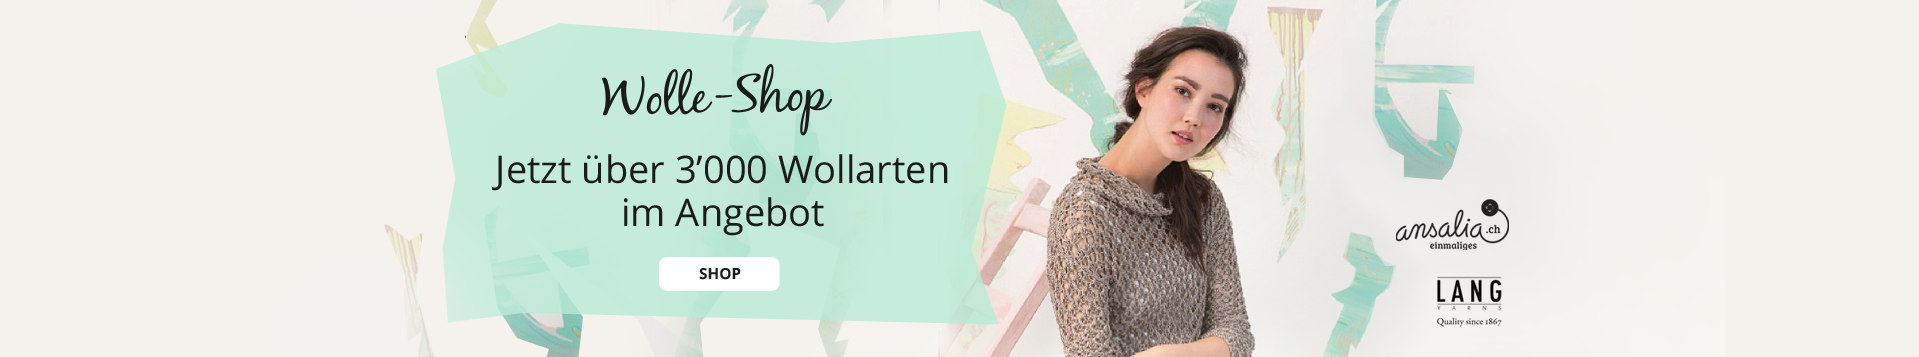 Wolle Shop